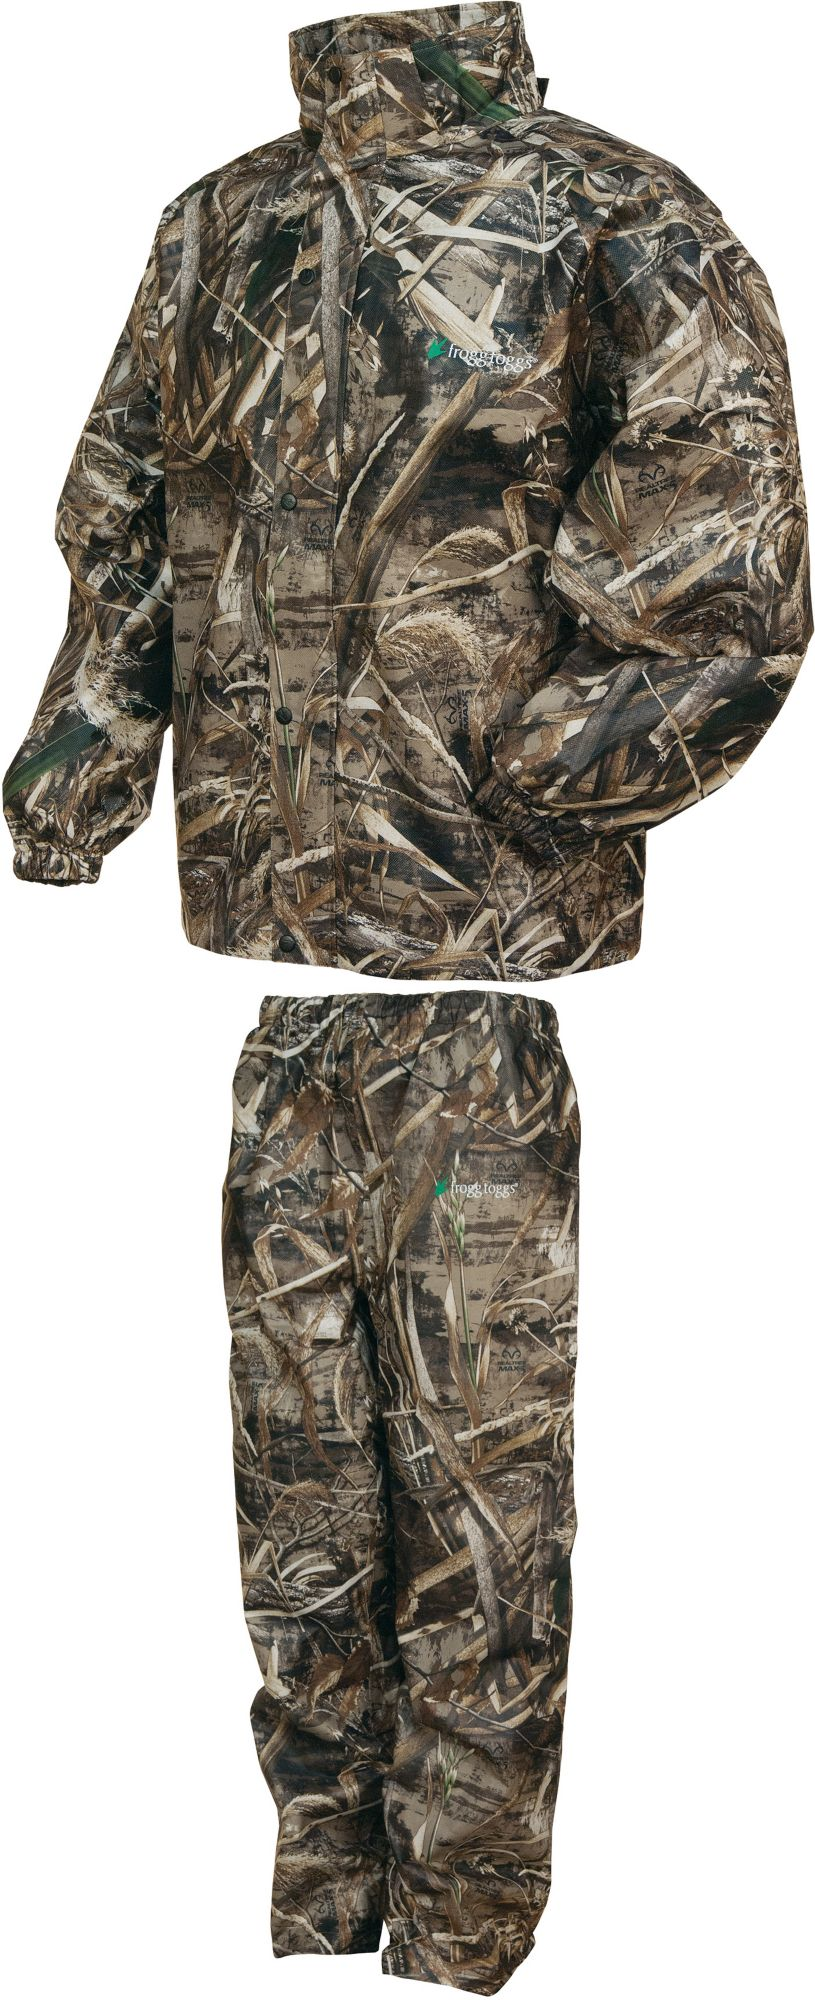 frogg toggs Men's All Sport Camo Rain Suit, Size: Small, Max 5 thumbnail